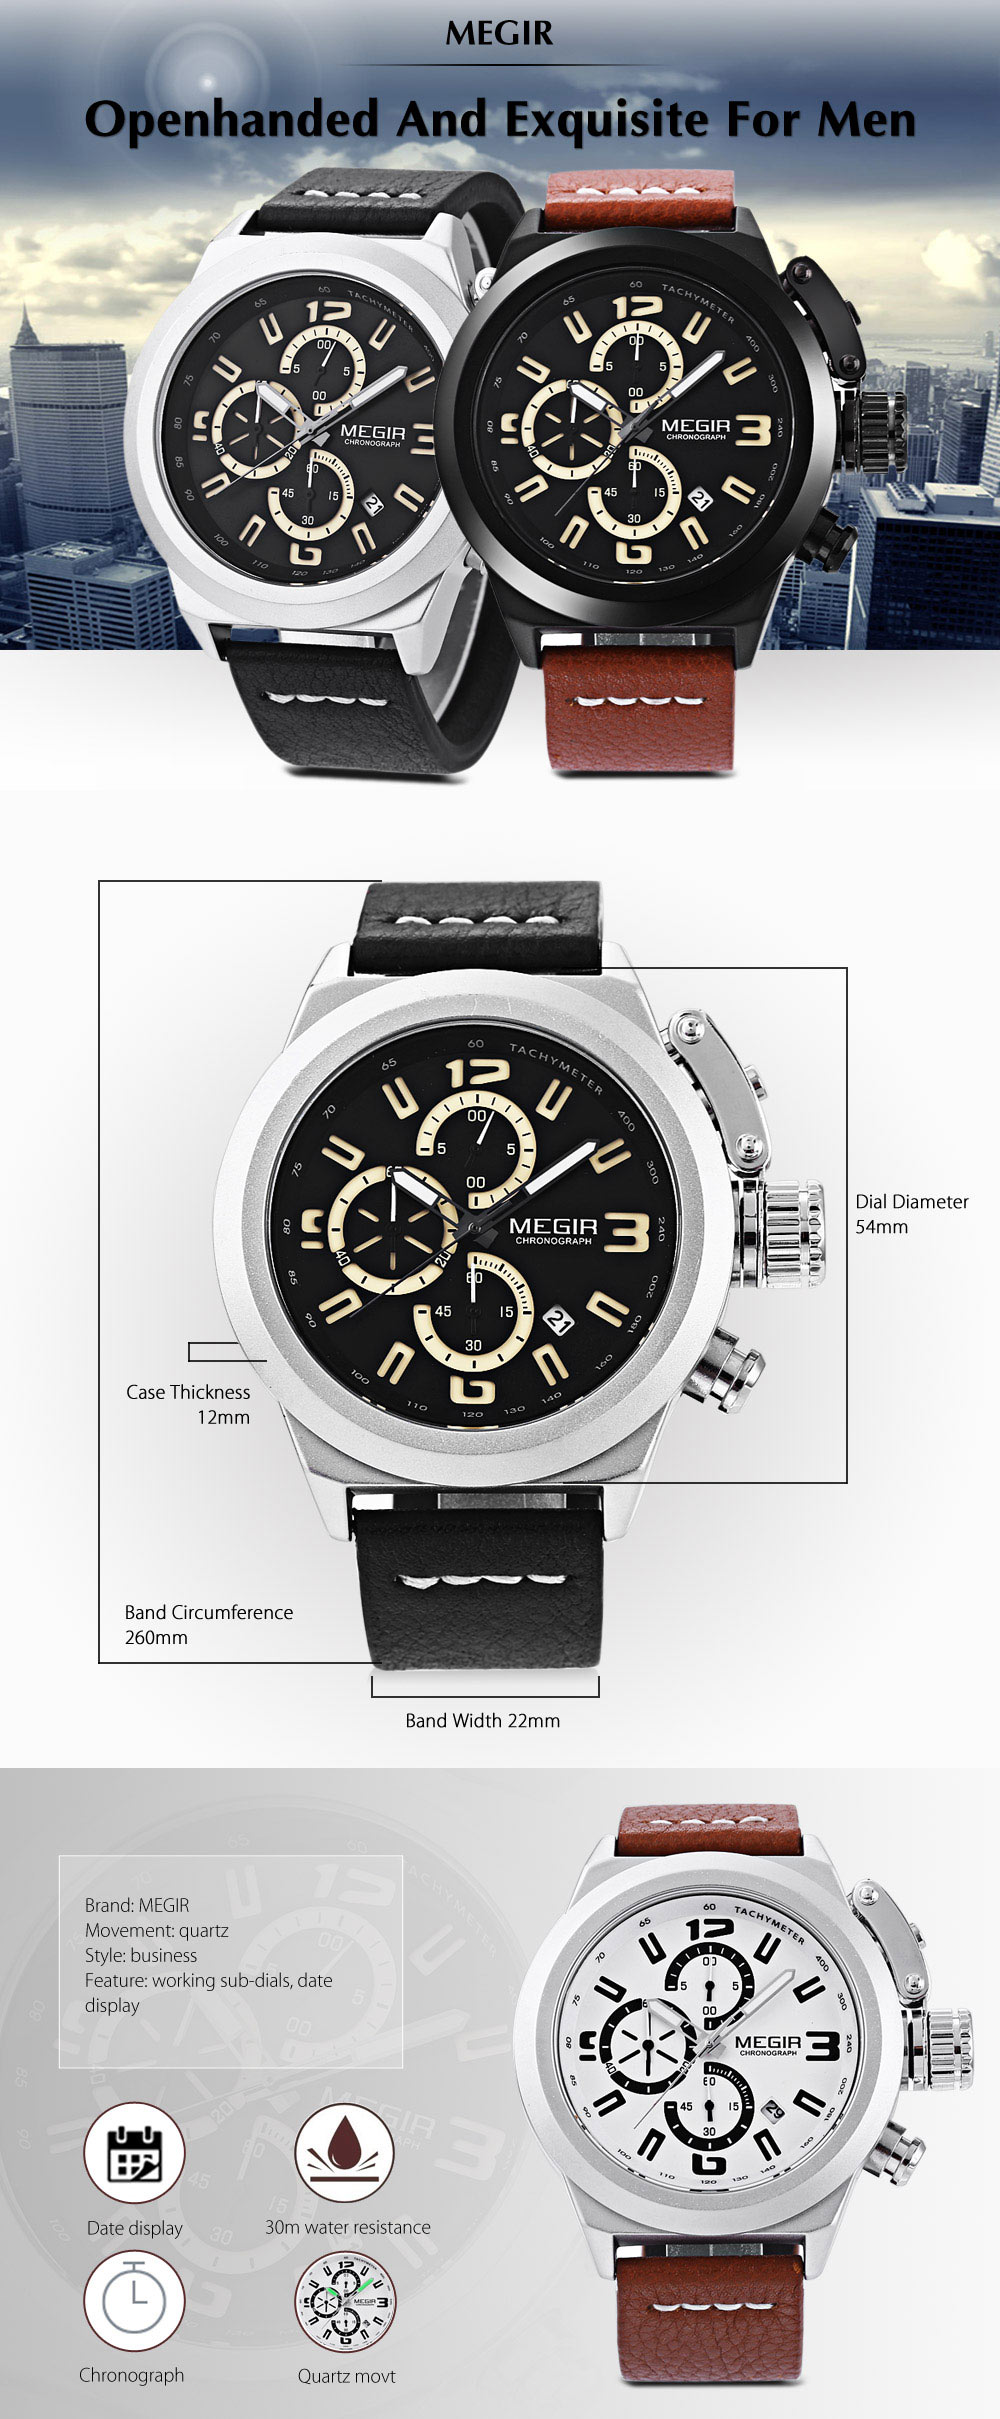 MEGIR 2029 Men Quartz Watch Working Sub-dial Chronograph Date Display Wristwatch